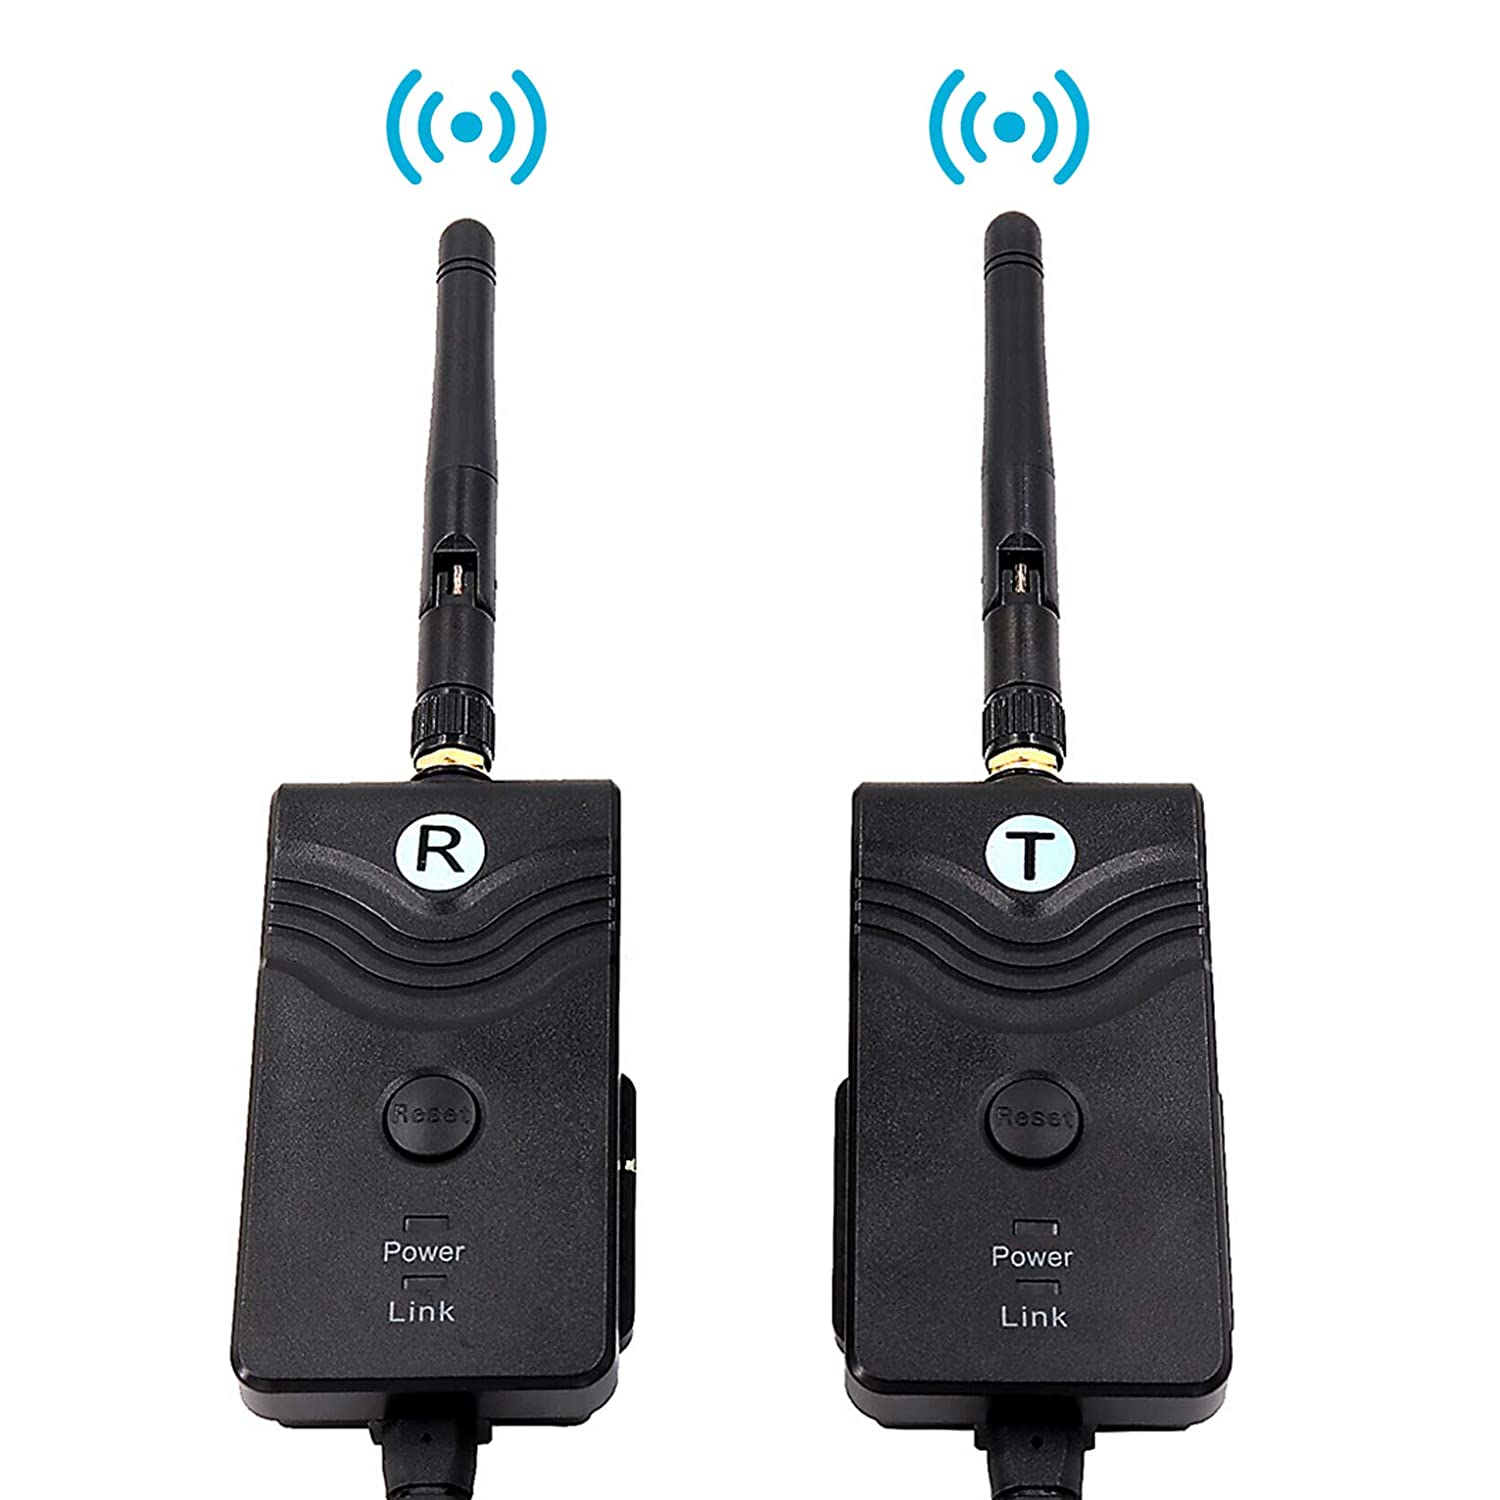 CAMONS Wireless Color Video Transmitter /& Receiver for Car//SUV//Trailer Wired Backup Camera System DC12-24V 2.4GHz 4 PIN Connector Shenzhen Topwell Electronics Co Ltd